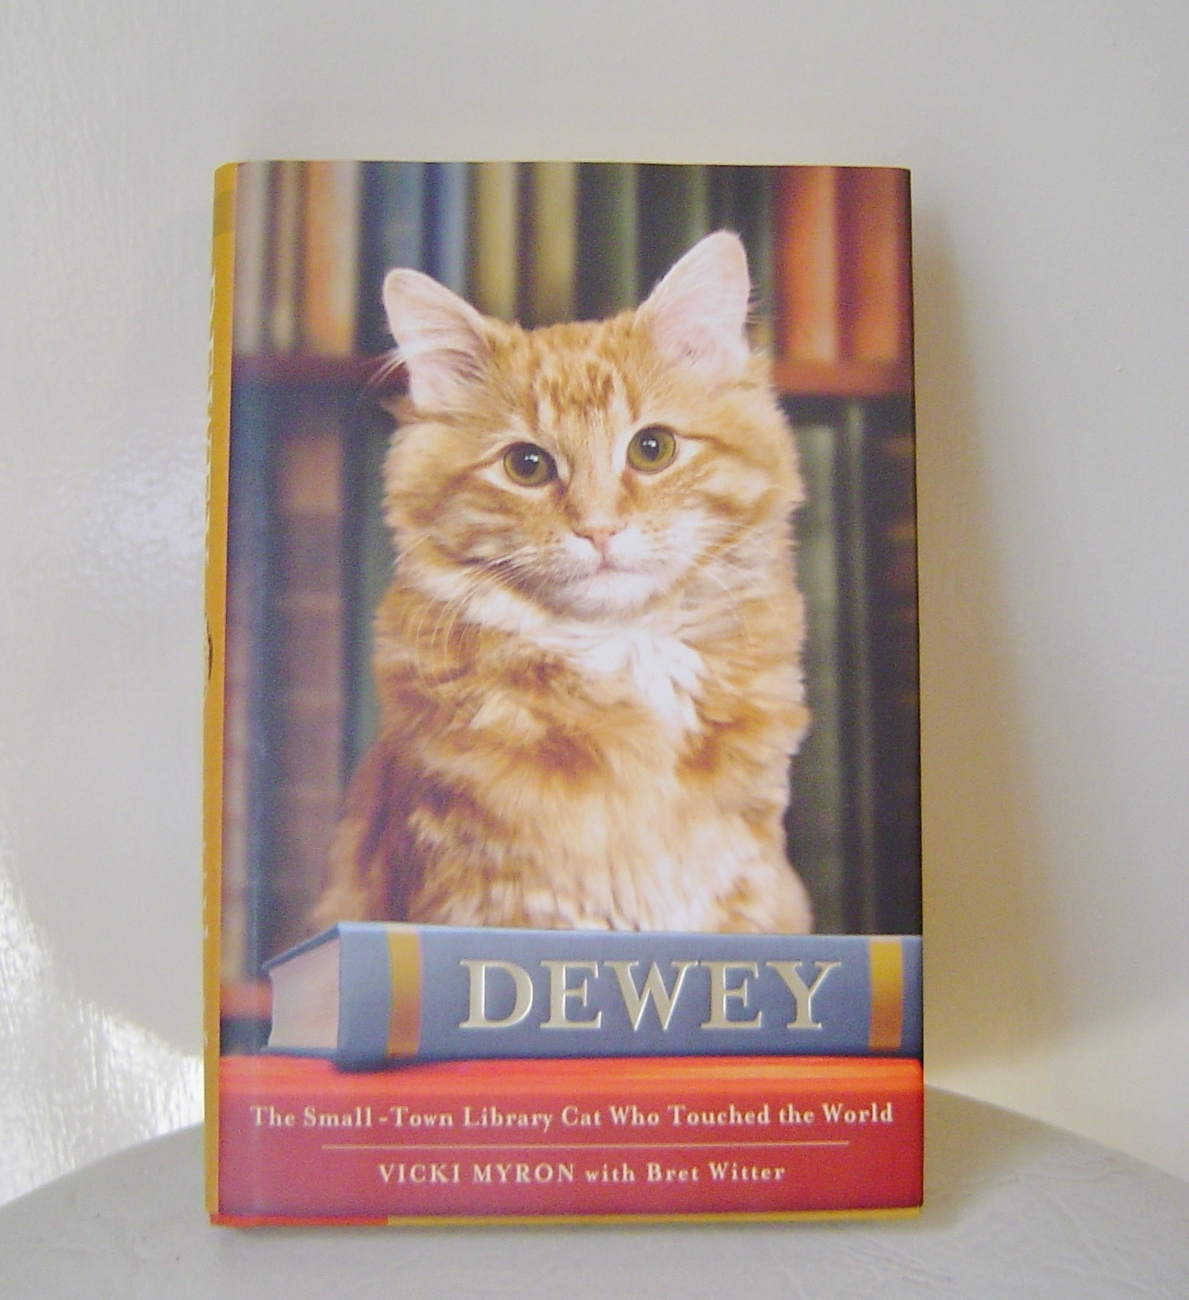 Dewey: The Small-Town Library Cat Who Touched the World Book Hardcover